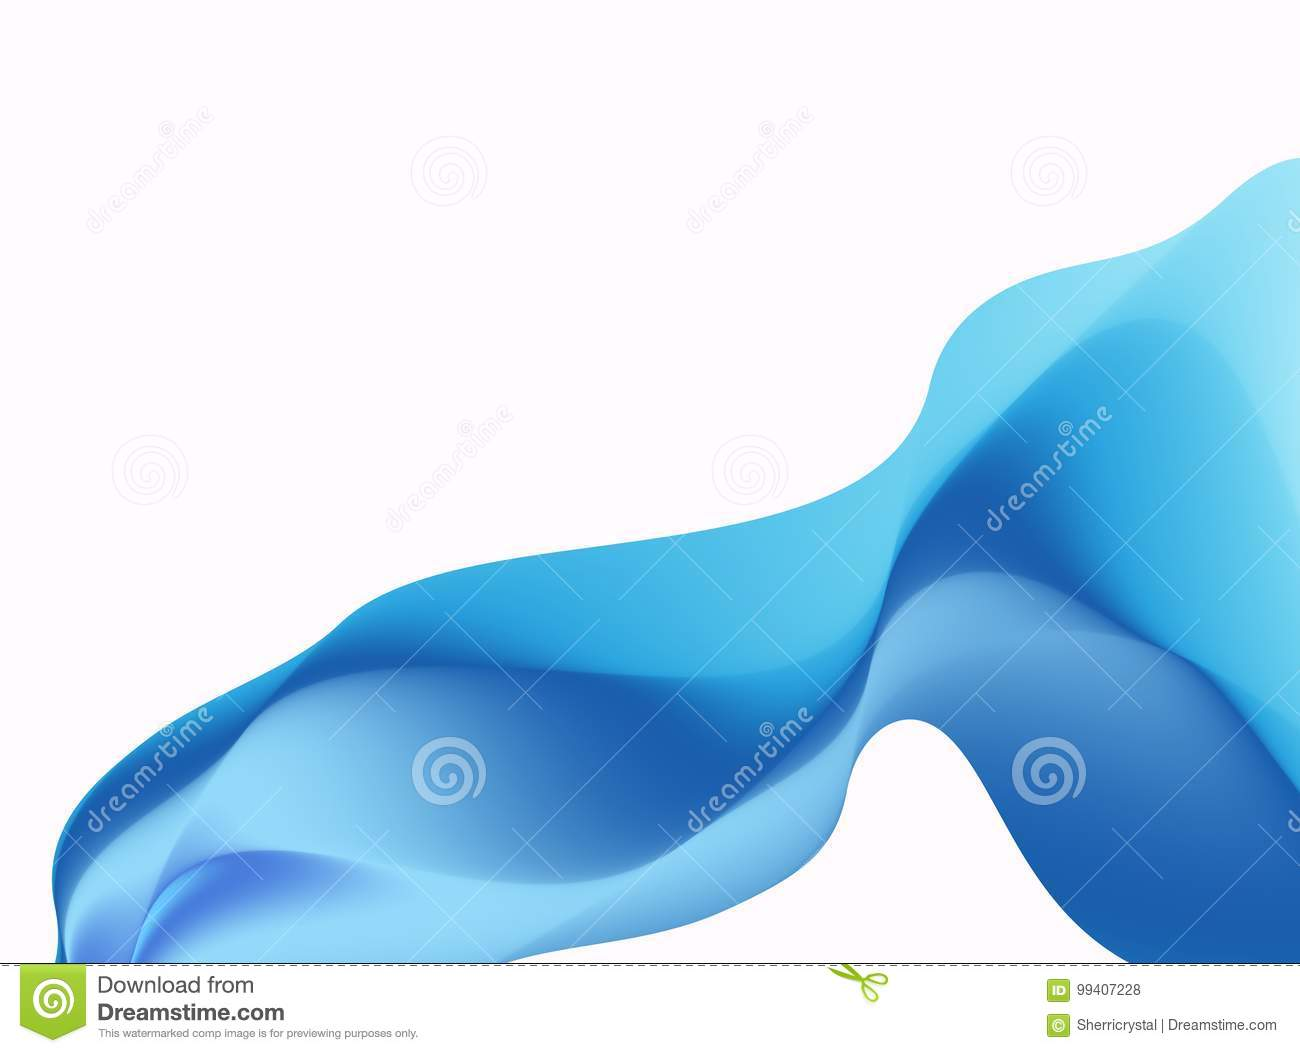 Blue abstract fractal background. Colorful waves like a veil or scarf on white backdrop. Bright modern digital art. Creative graph